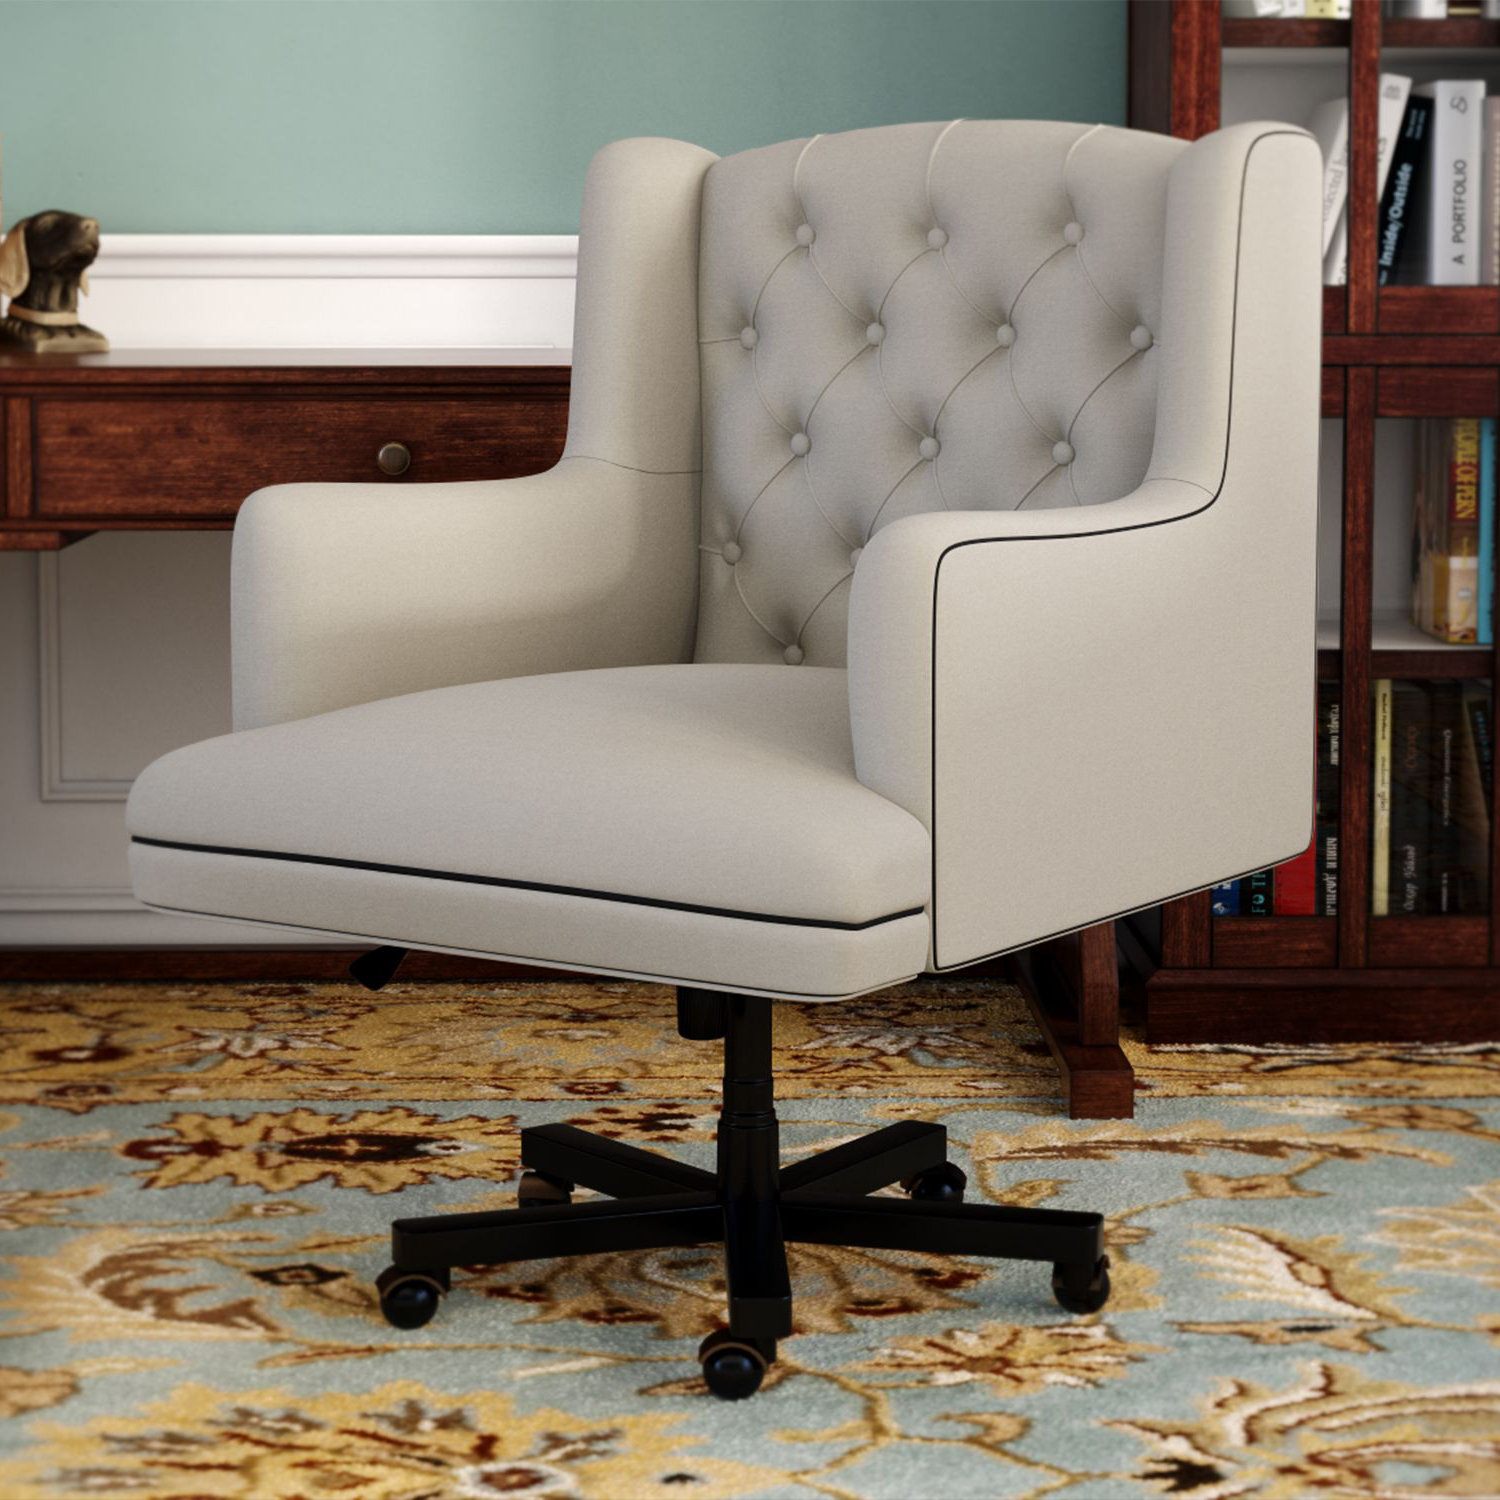 Darby Home Co Nichols Desk Chair & Reviews | Wayfair With Regard To Nichol Swivel Accent Chairs (Image 3 of 20)